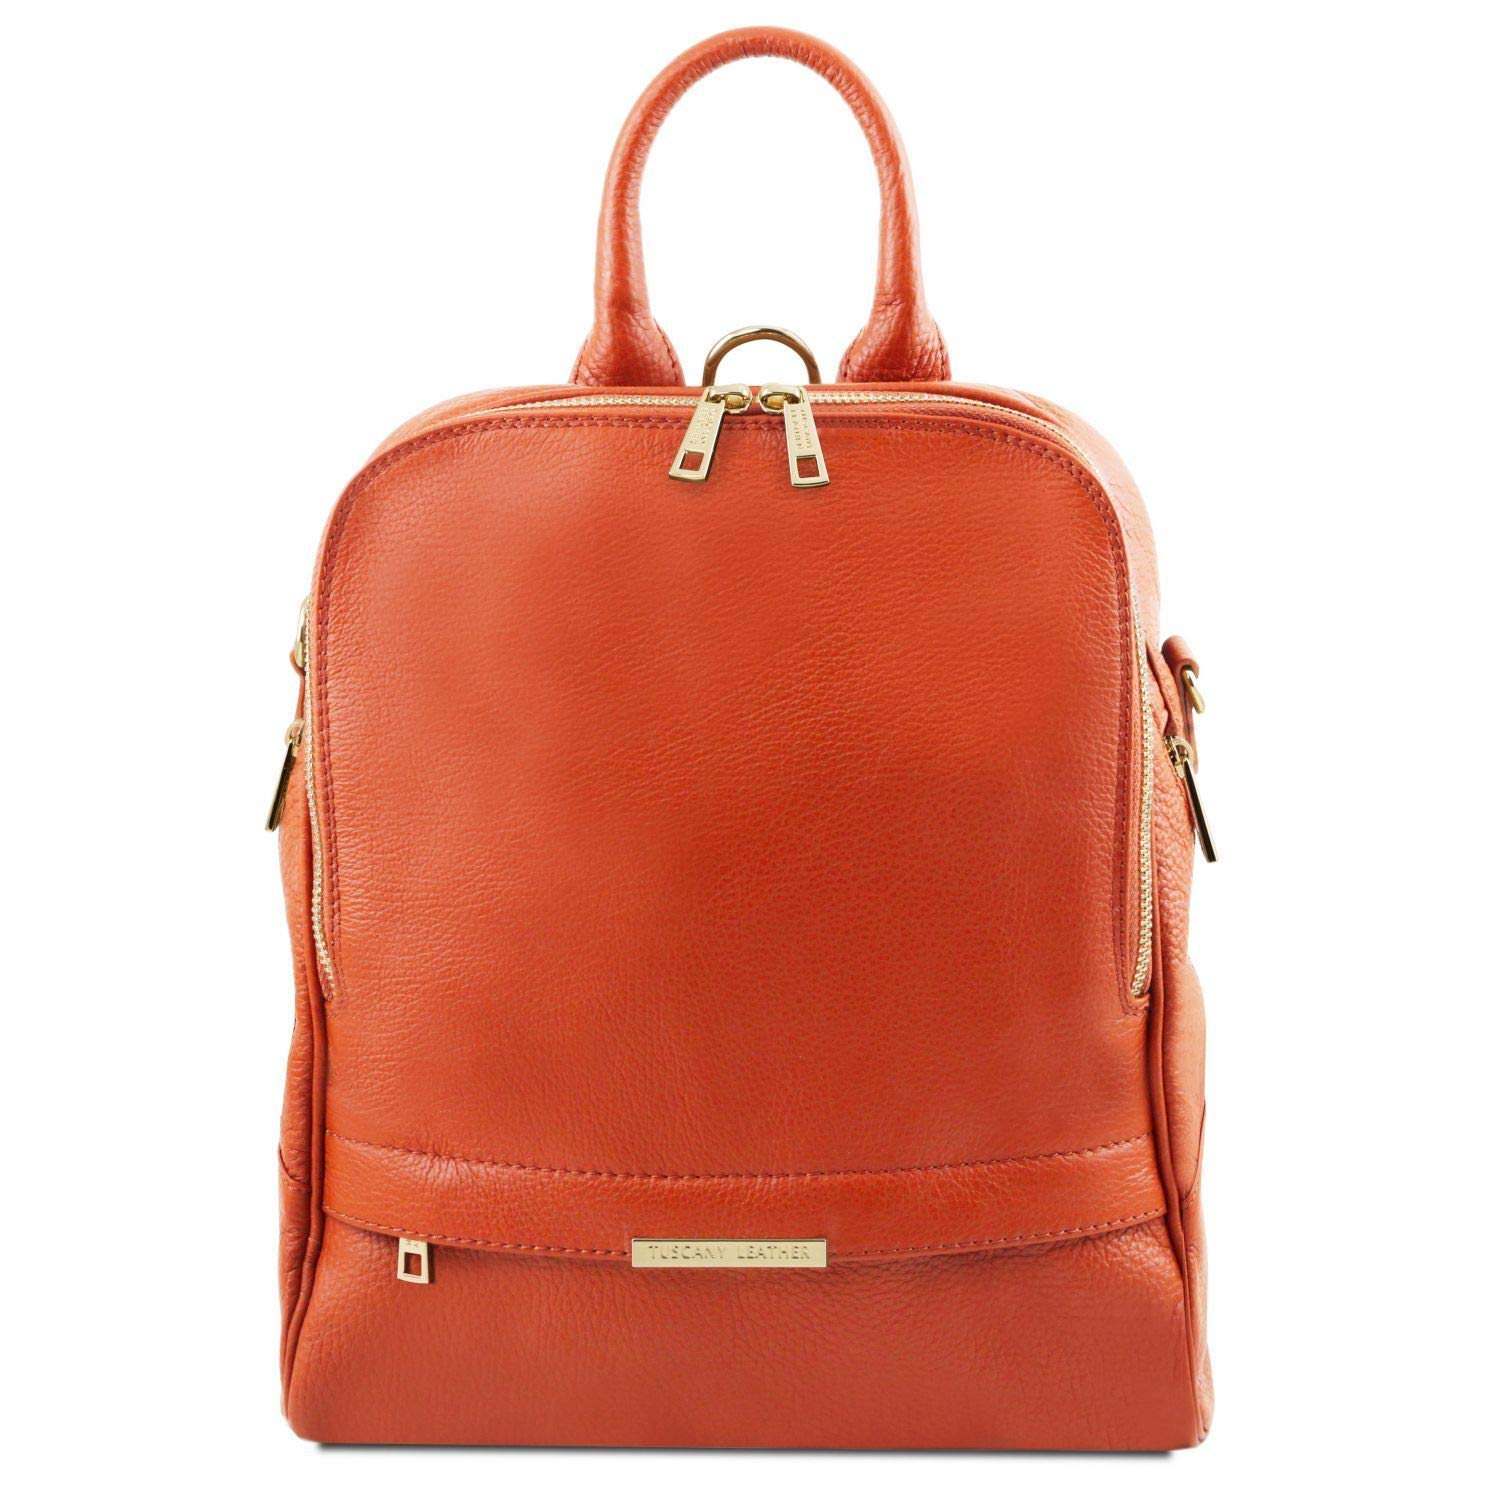 Tuscany Leather TLBag Soft leather backpack for women Brandy